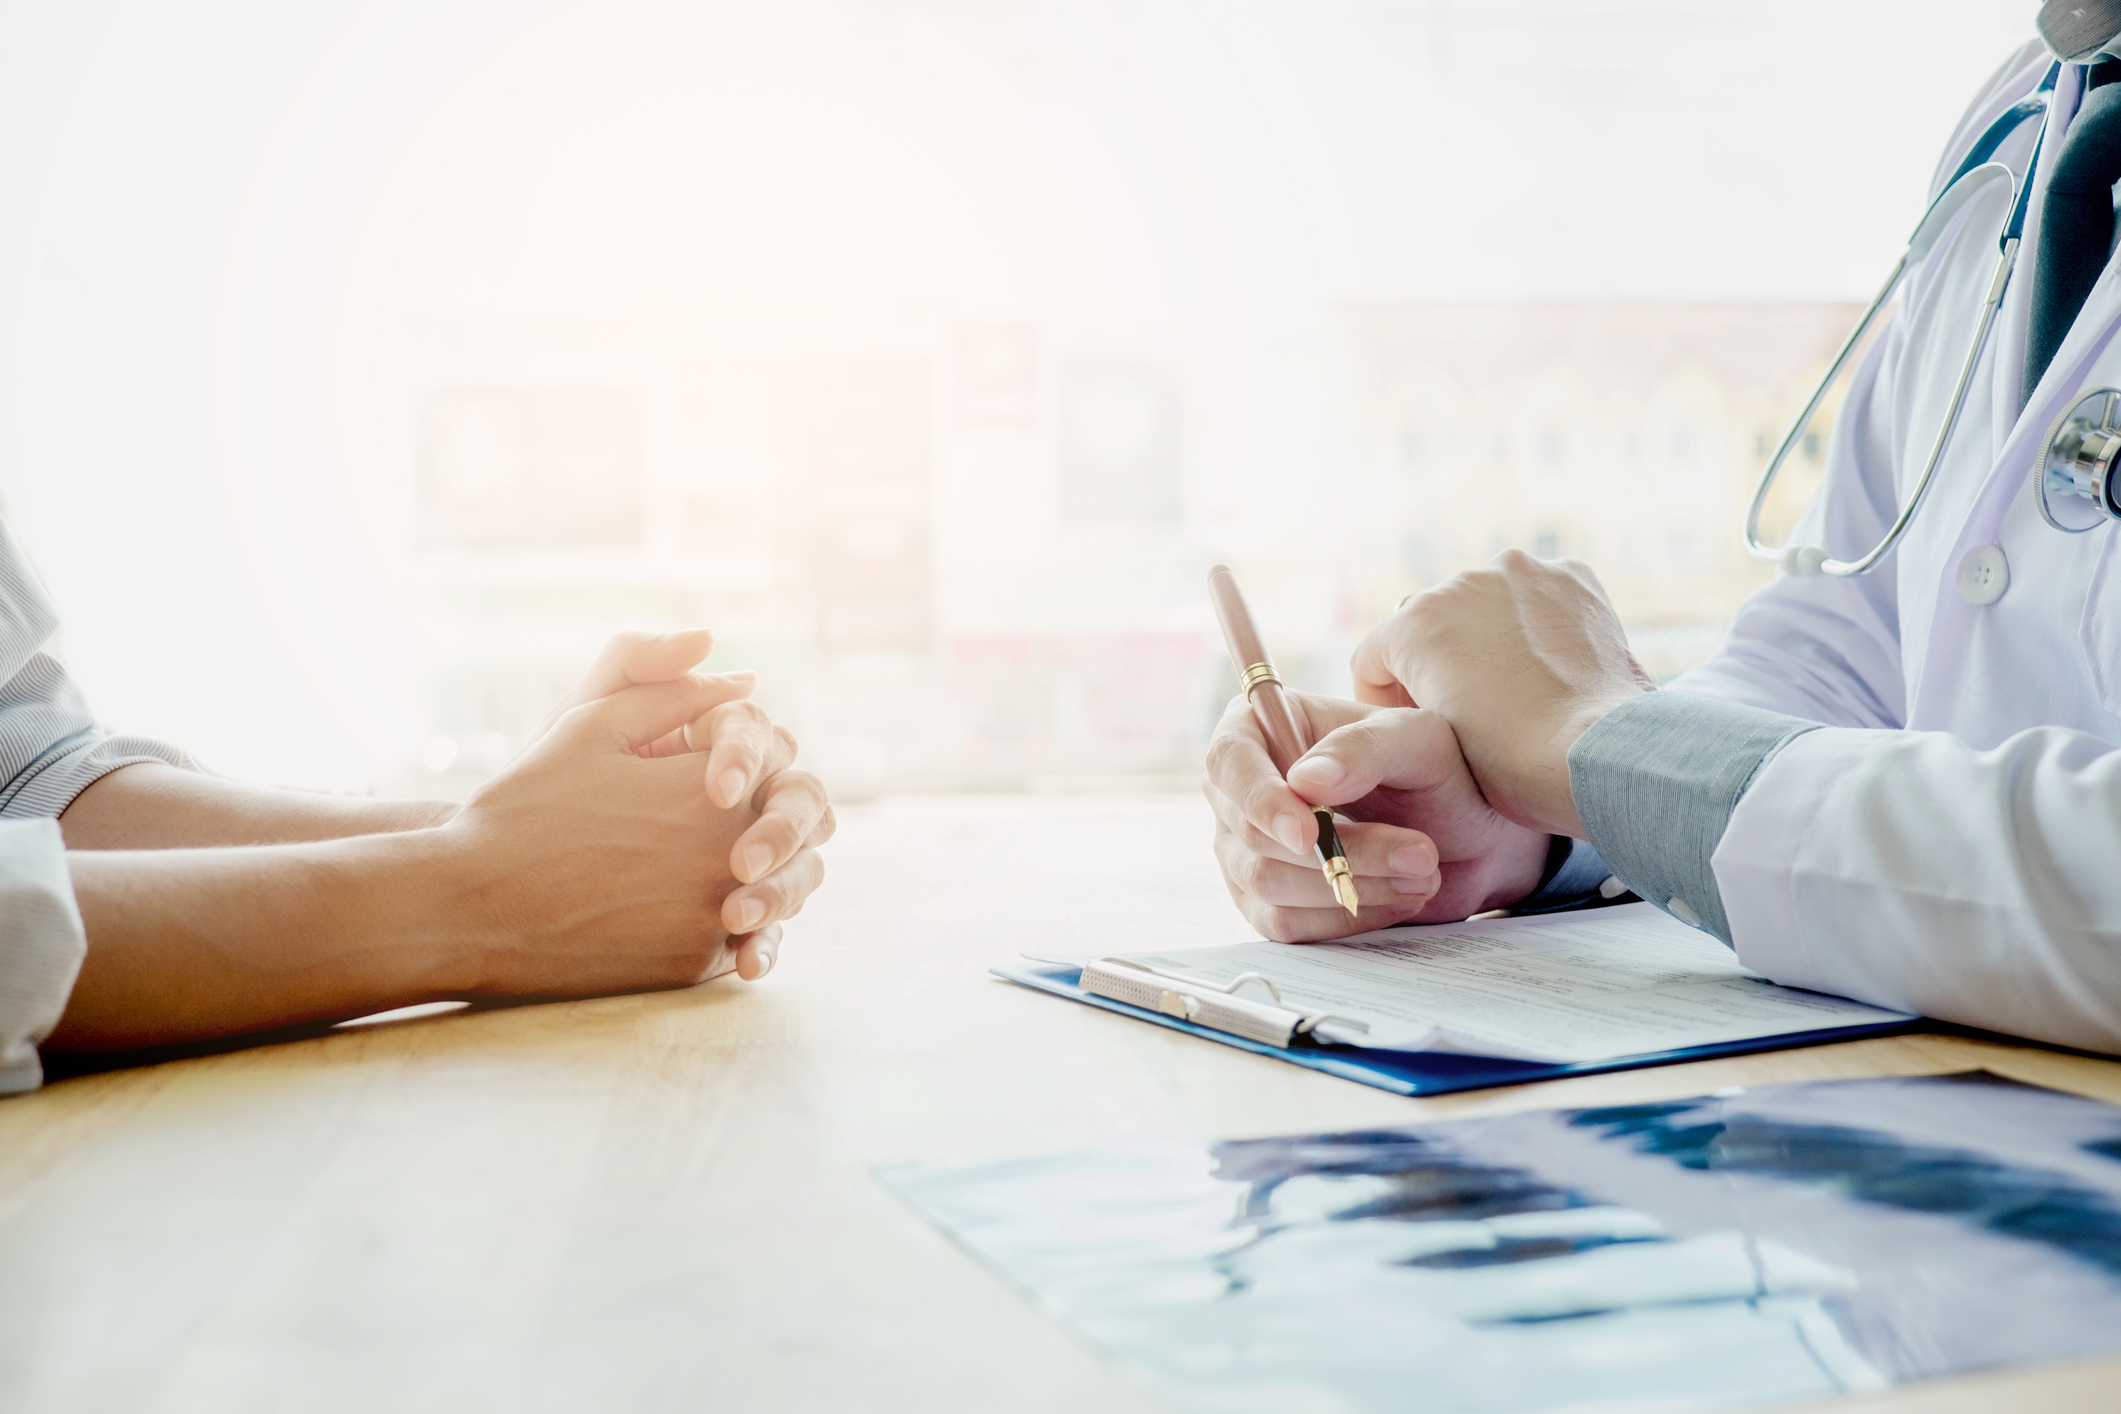 Tips for Presenting a Patient With a Pain Management Contract